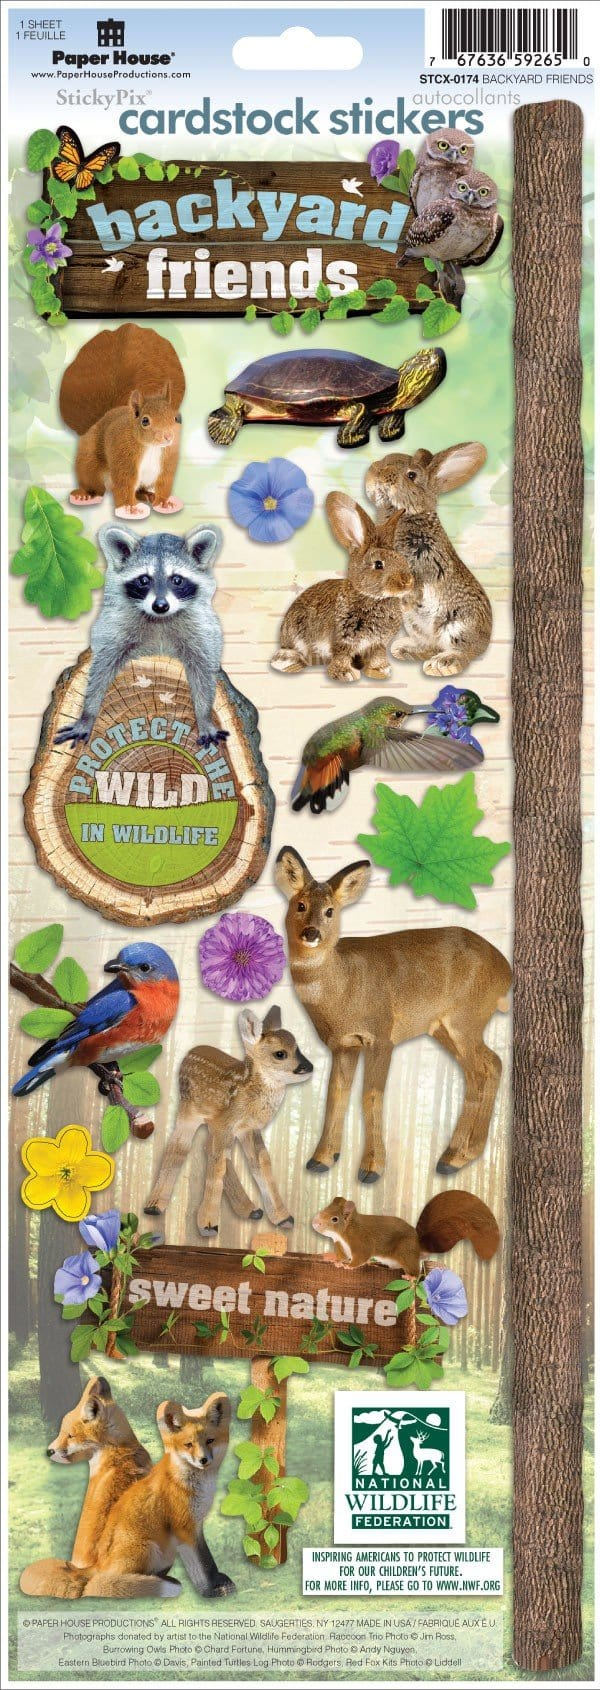 backyard friends cardstock stickers